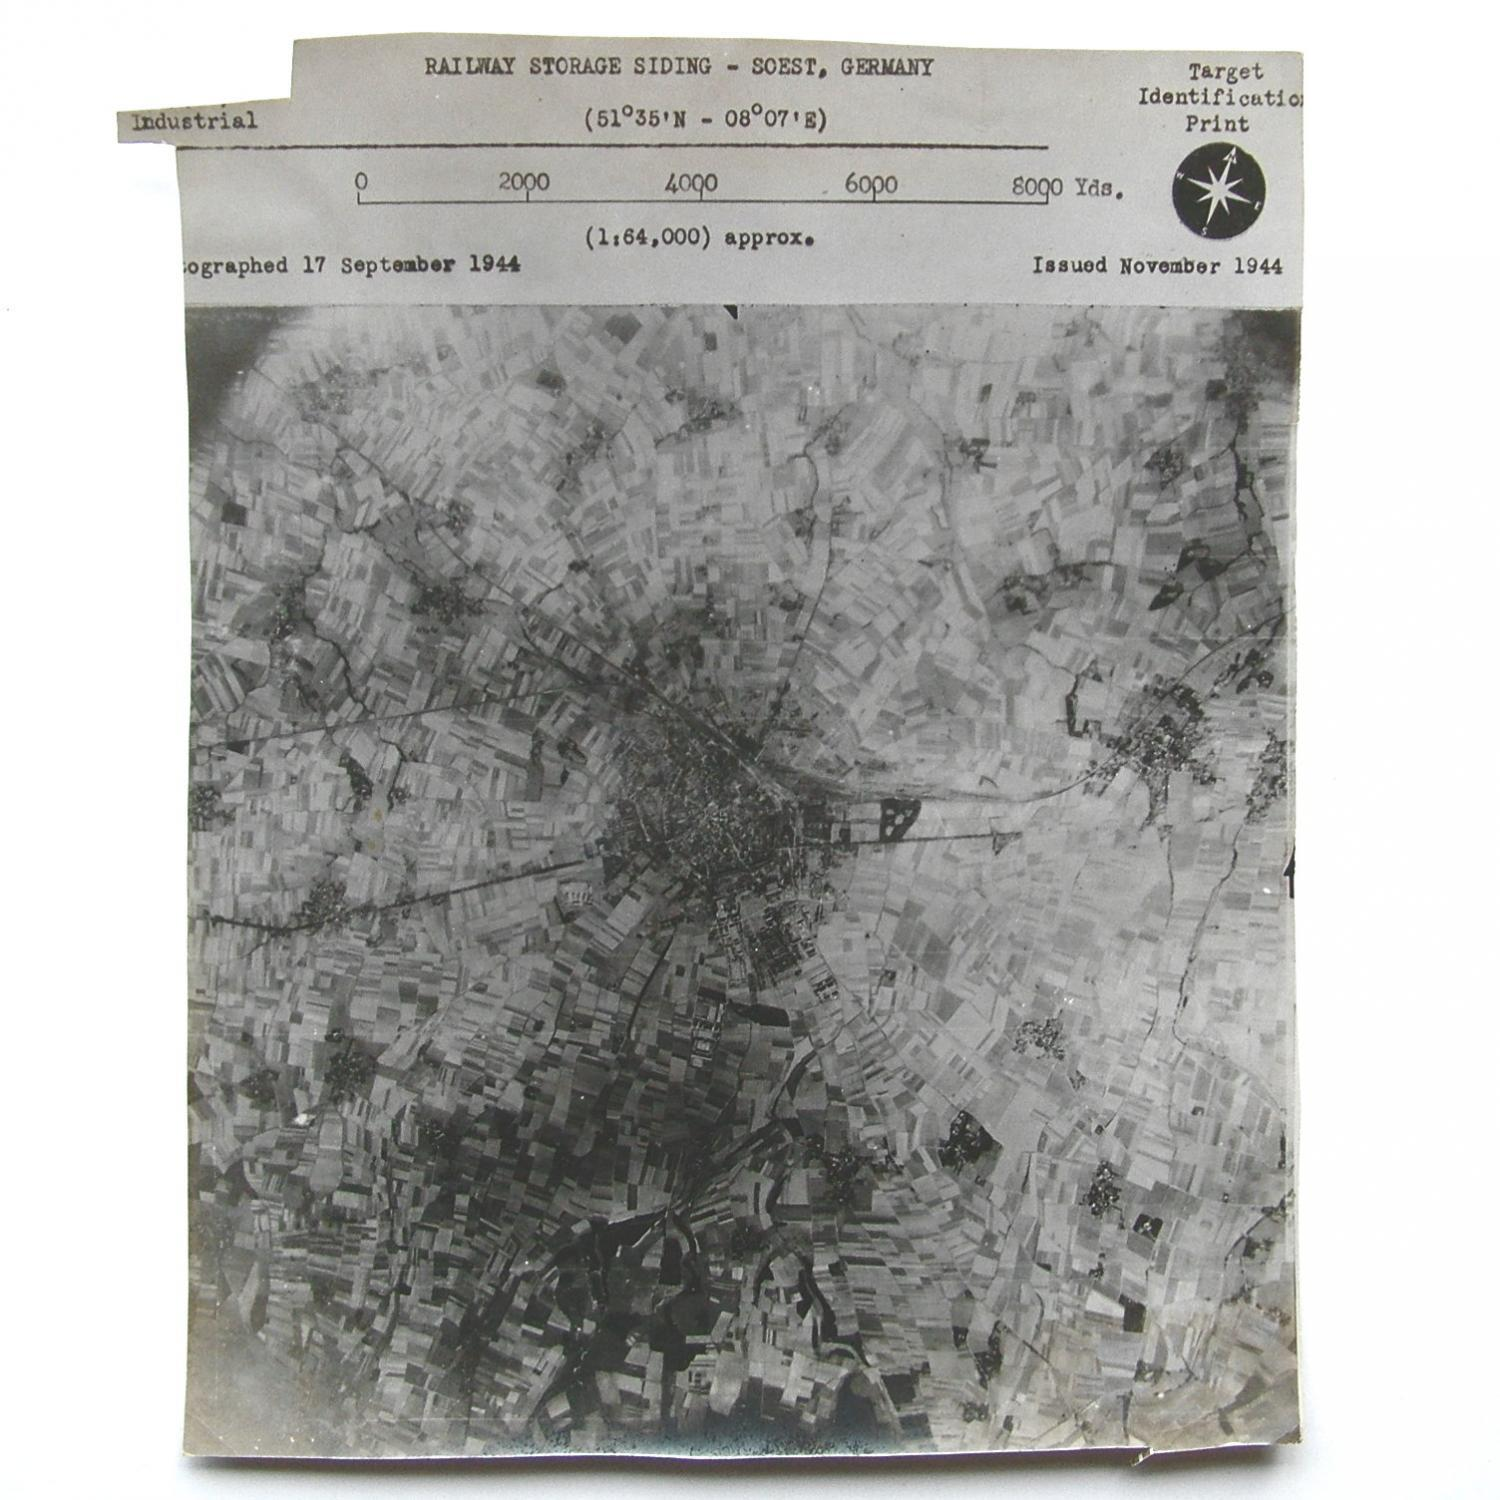 USAAF 91st Bomb Group Target Photo #5